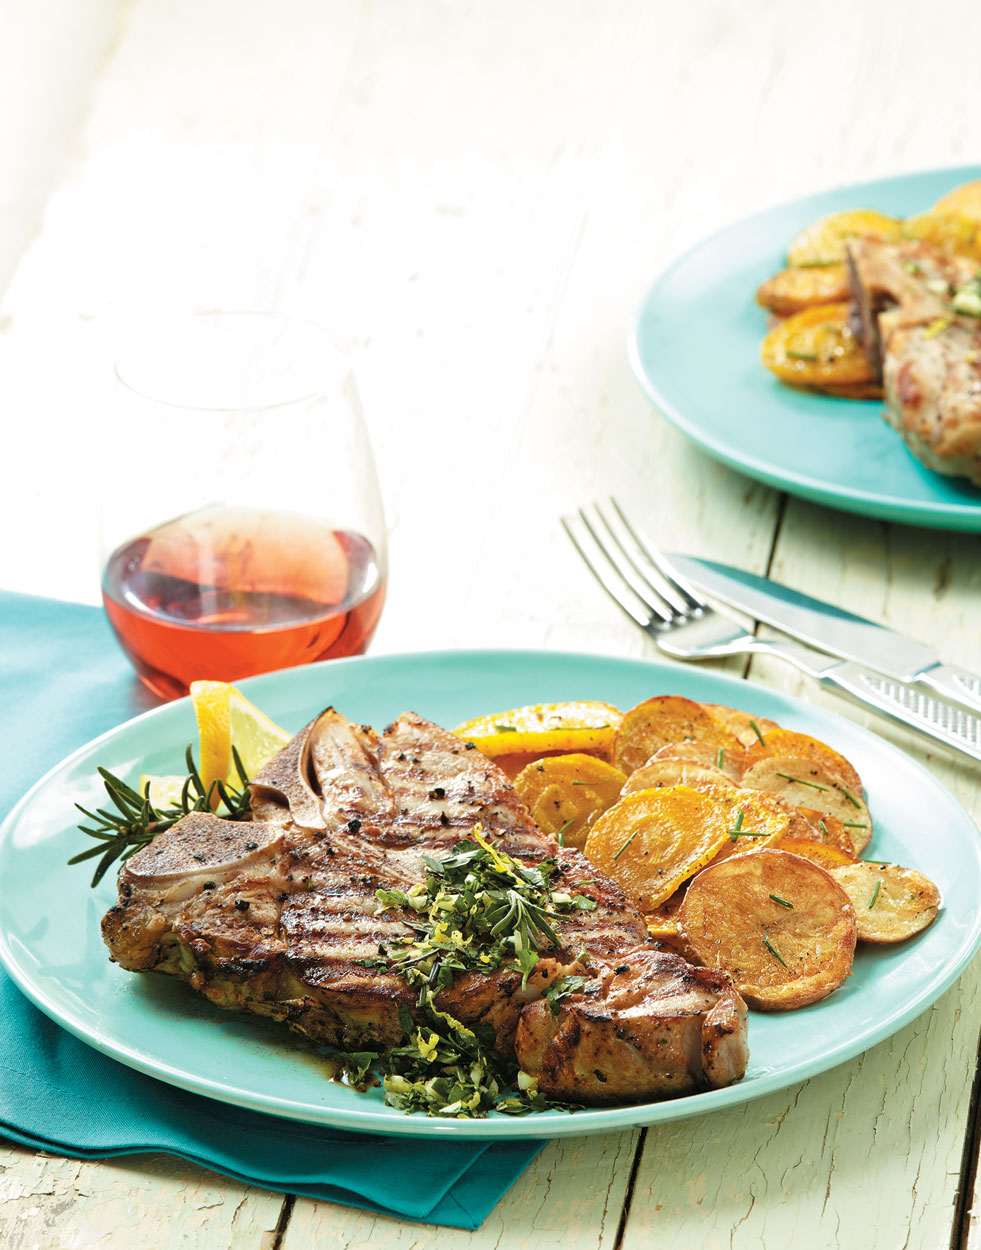 Grilled Veal T-bones with Rosemary Gremolata